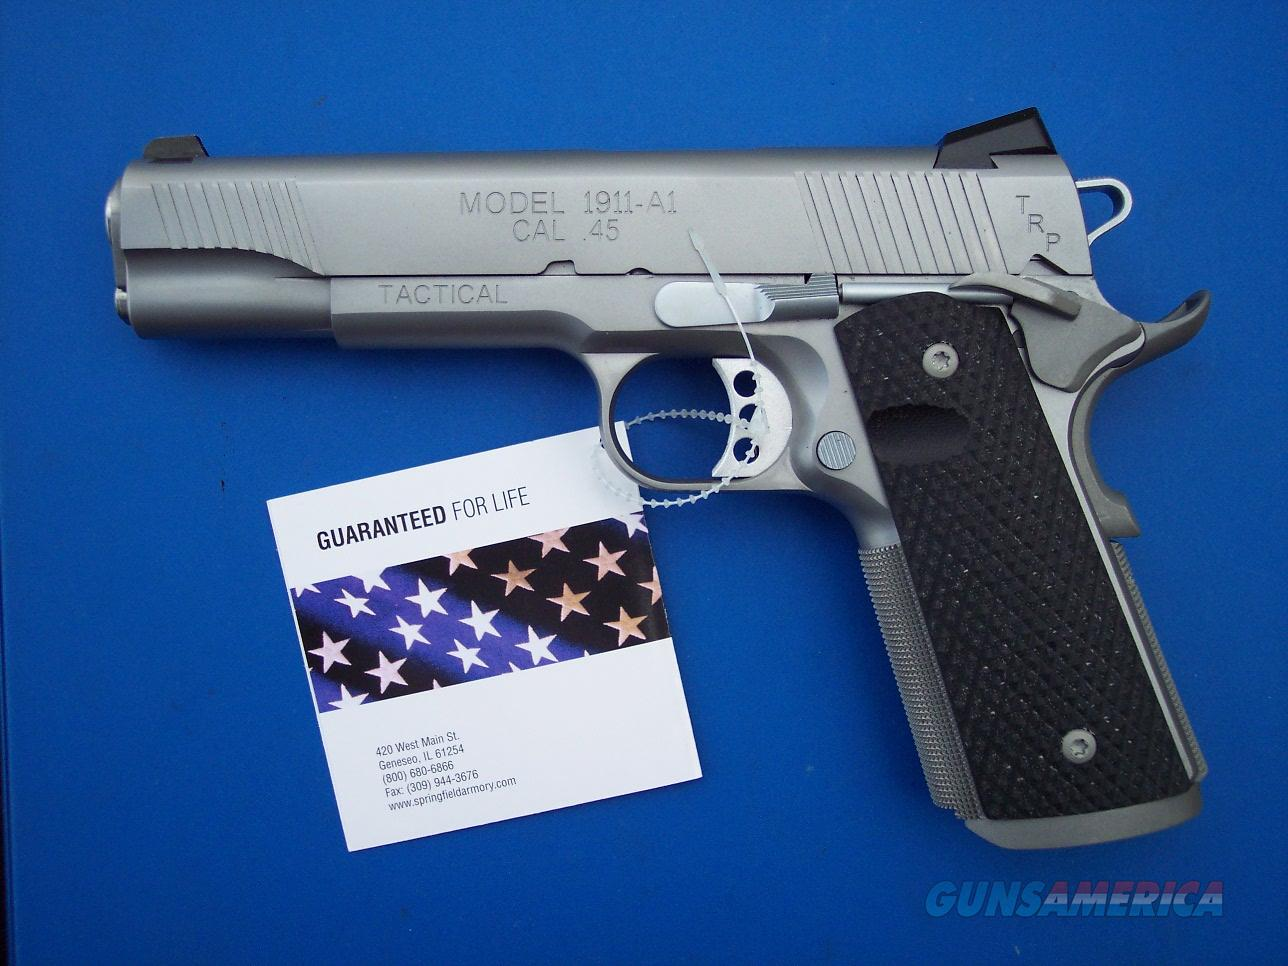 Springfield TRP Tactical 1911 .45 acp Stainless Tactical Response Pistol PC9107L18 *NEW*   Guns > Pistols > Springfield Armory Pistols > 1911 Type